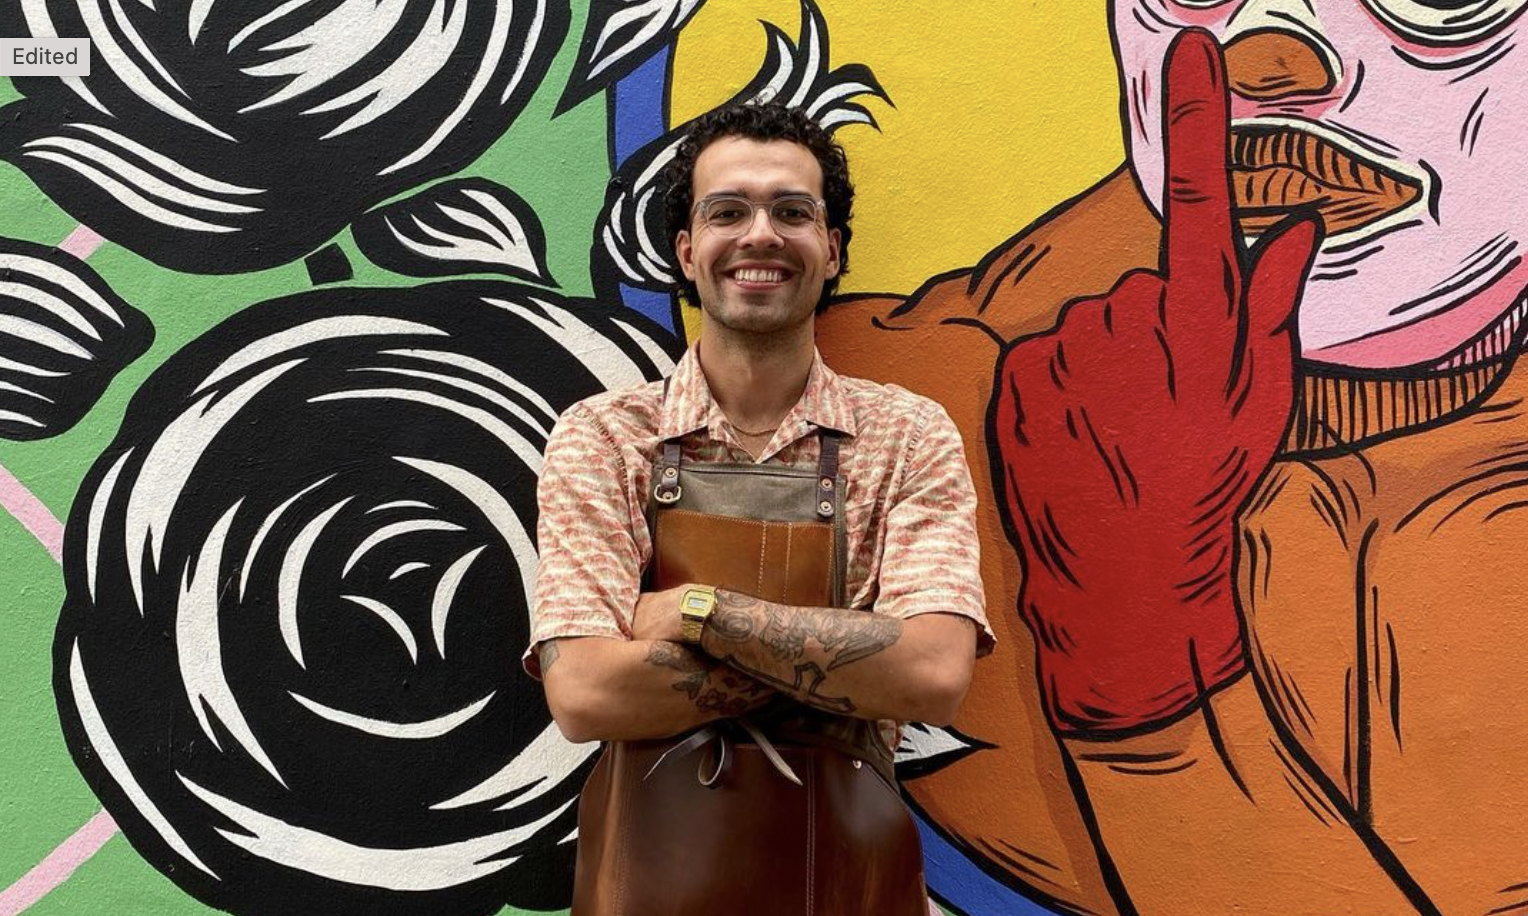 A man with glasses and an apron smiles in front of a mural of a luchador